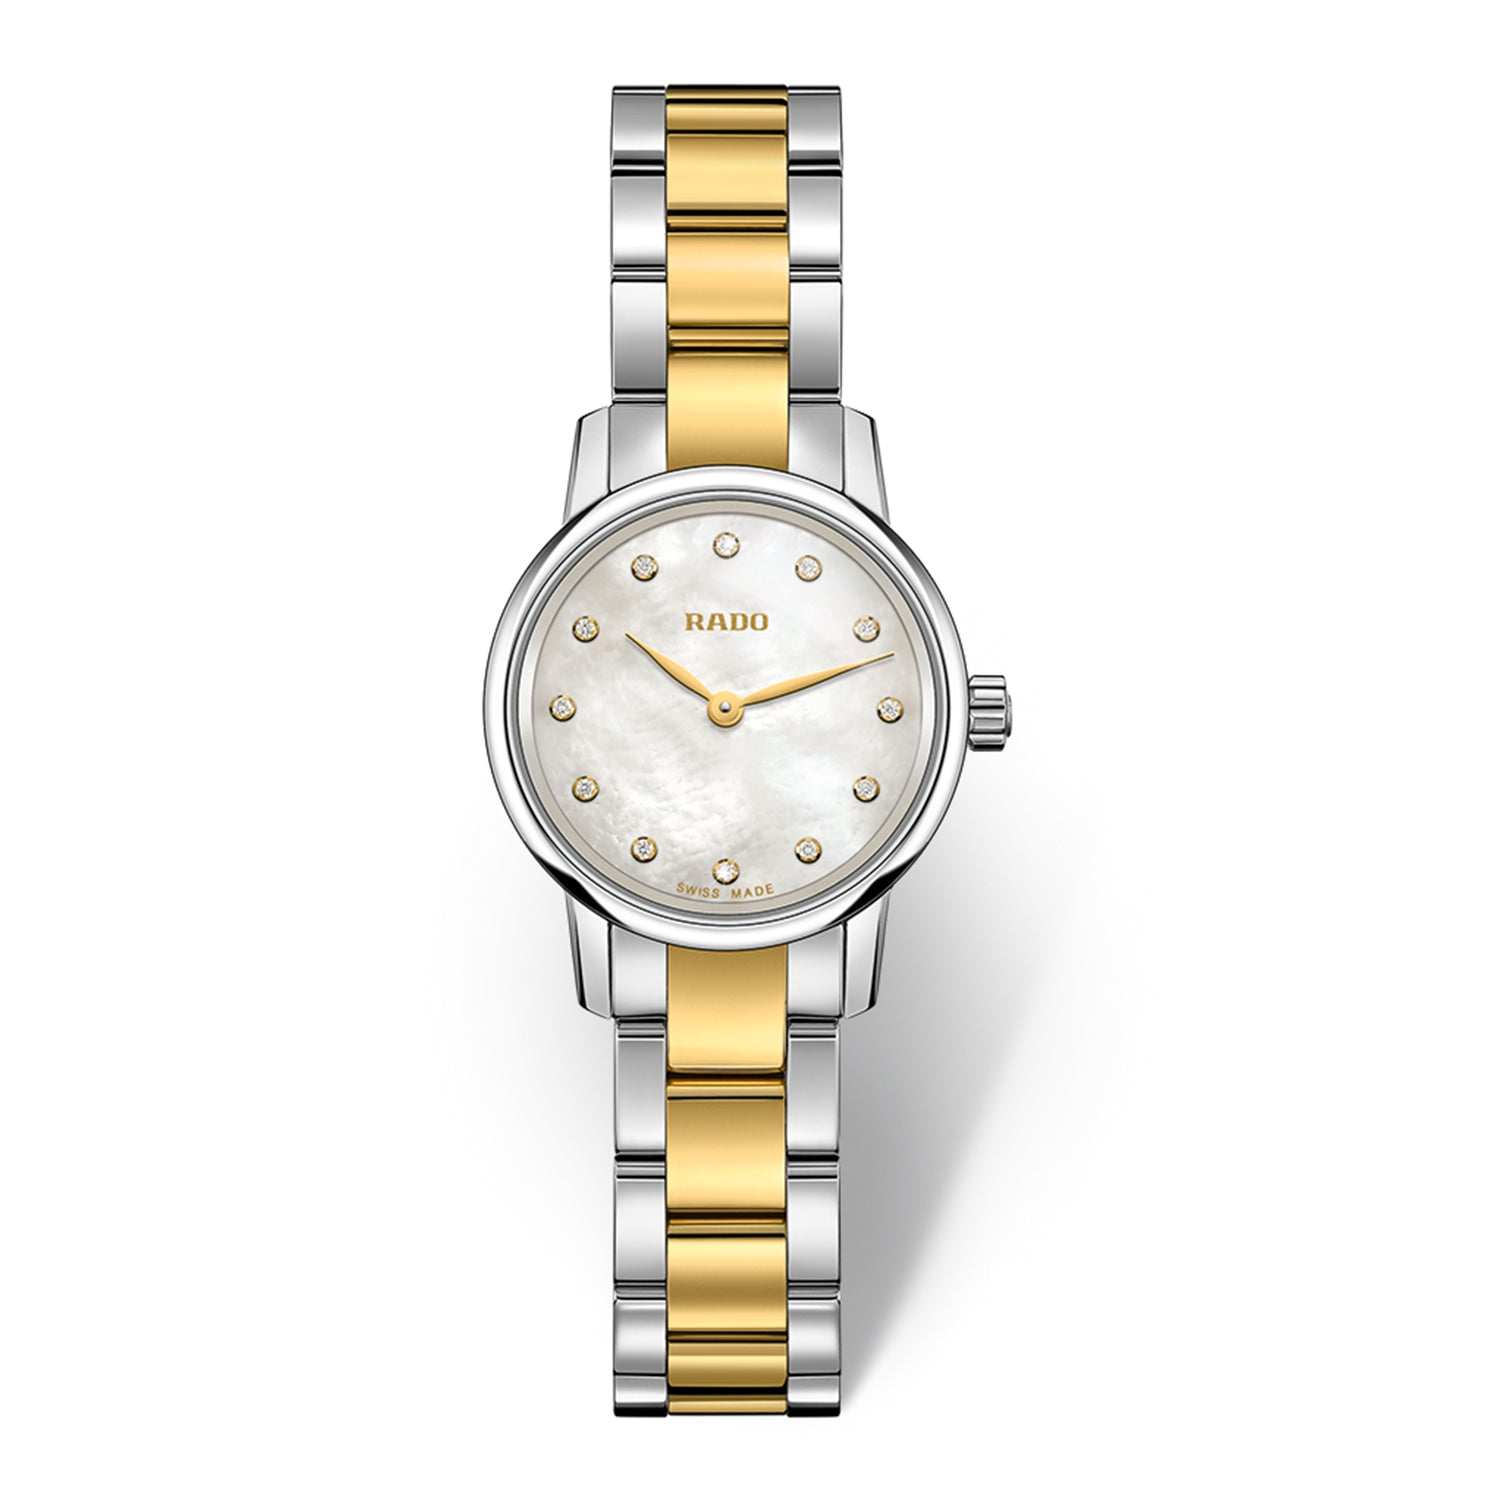 Rado Coupole Classic XS watch with bi-colour yellow bracelet, Mother of Pearl dial and 4 diamonds